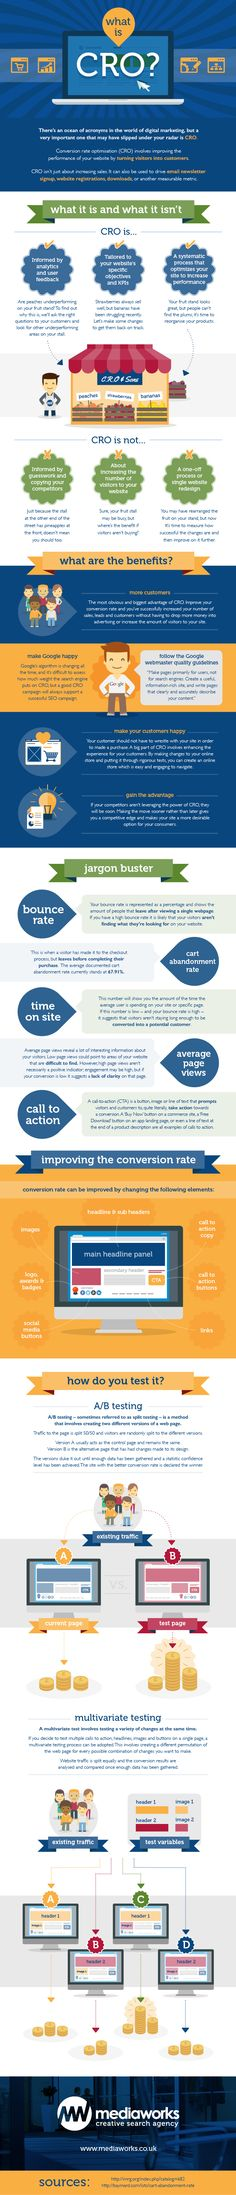 Infographic: What is conversion rate optimisation?